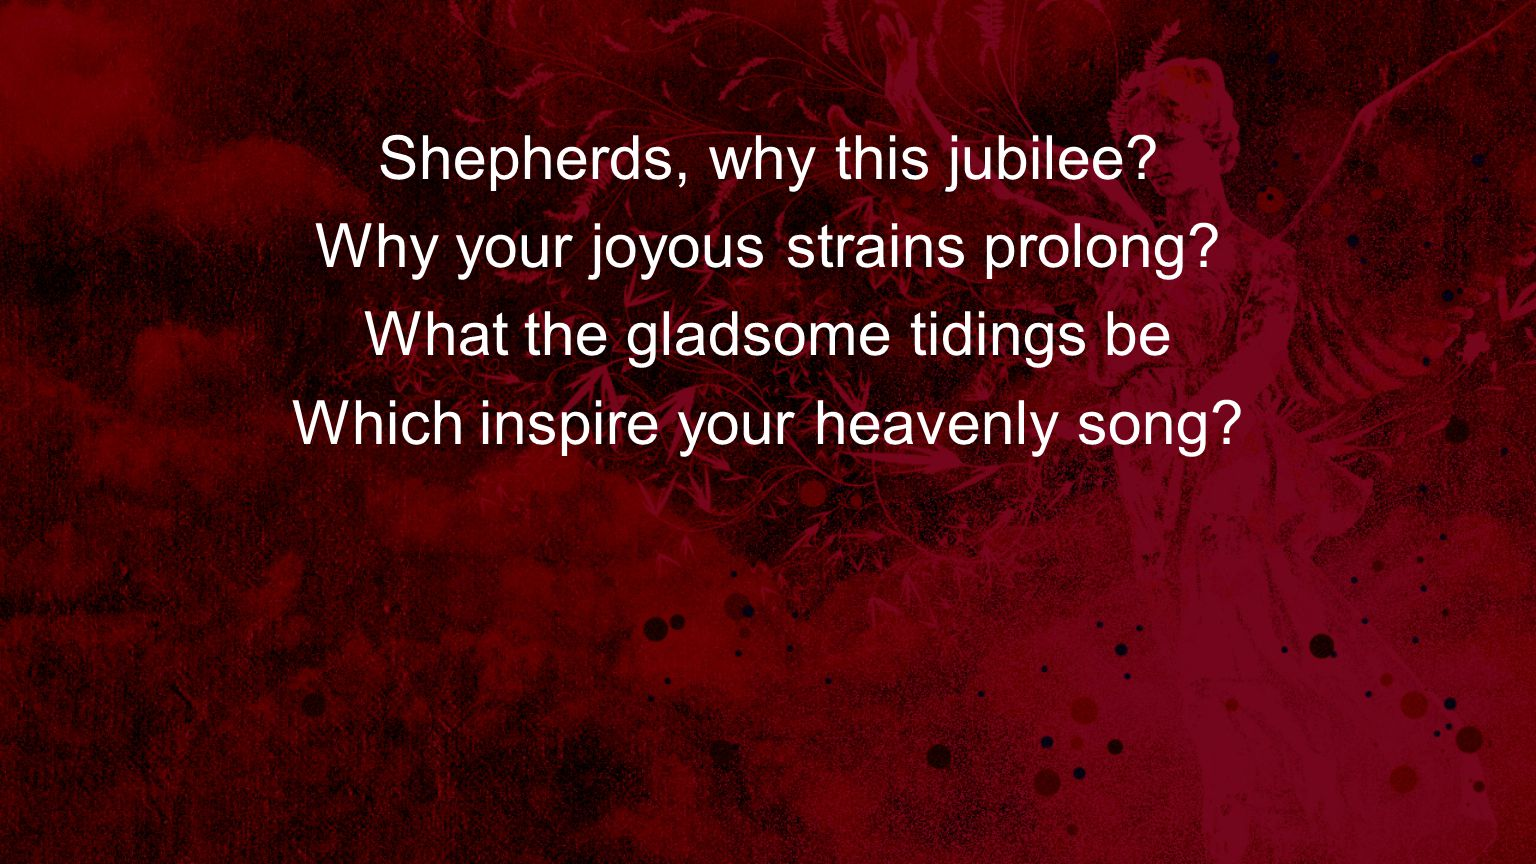 Shepherds, why this jubilee Why your joyous strains prolong